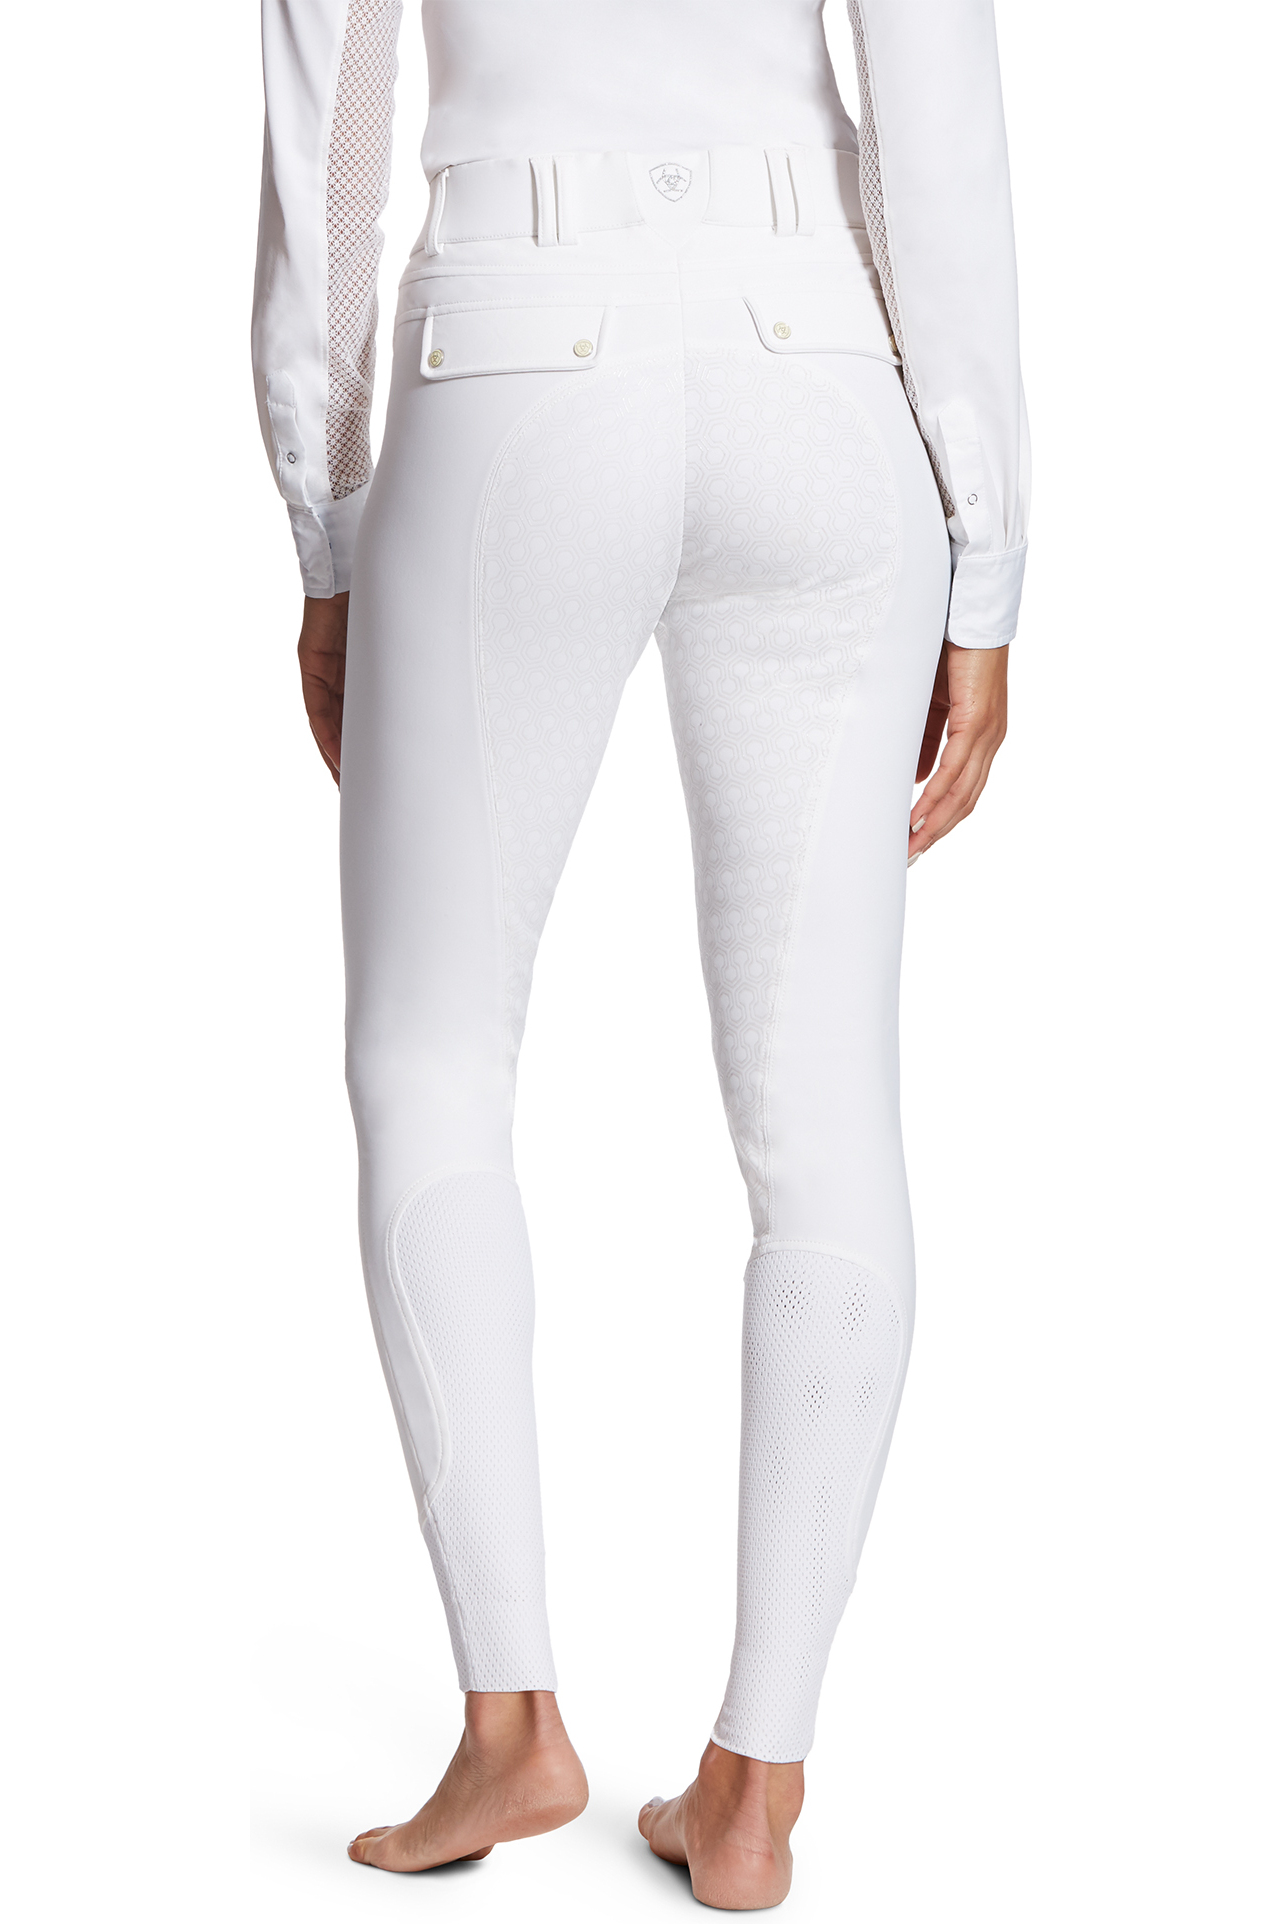 Ariat Womens Tri Factor Grip Full Seat Breeches White The Drillshed